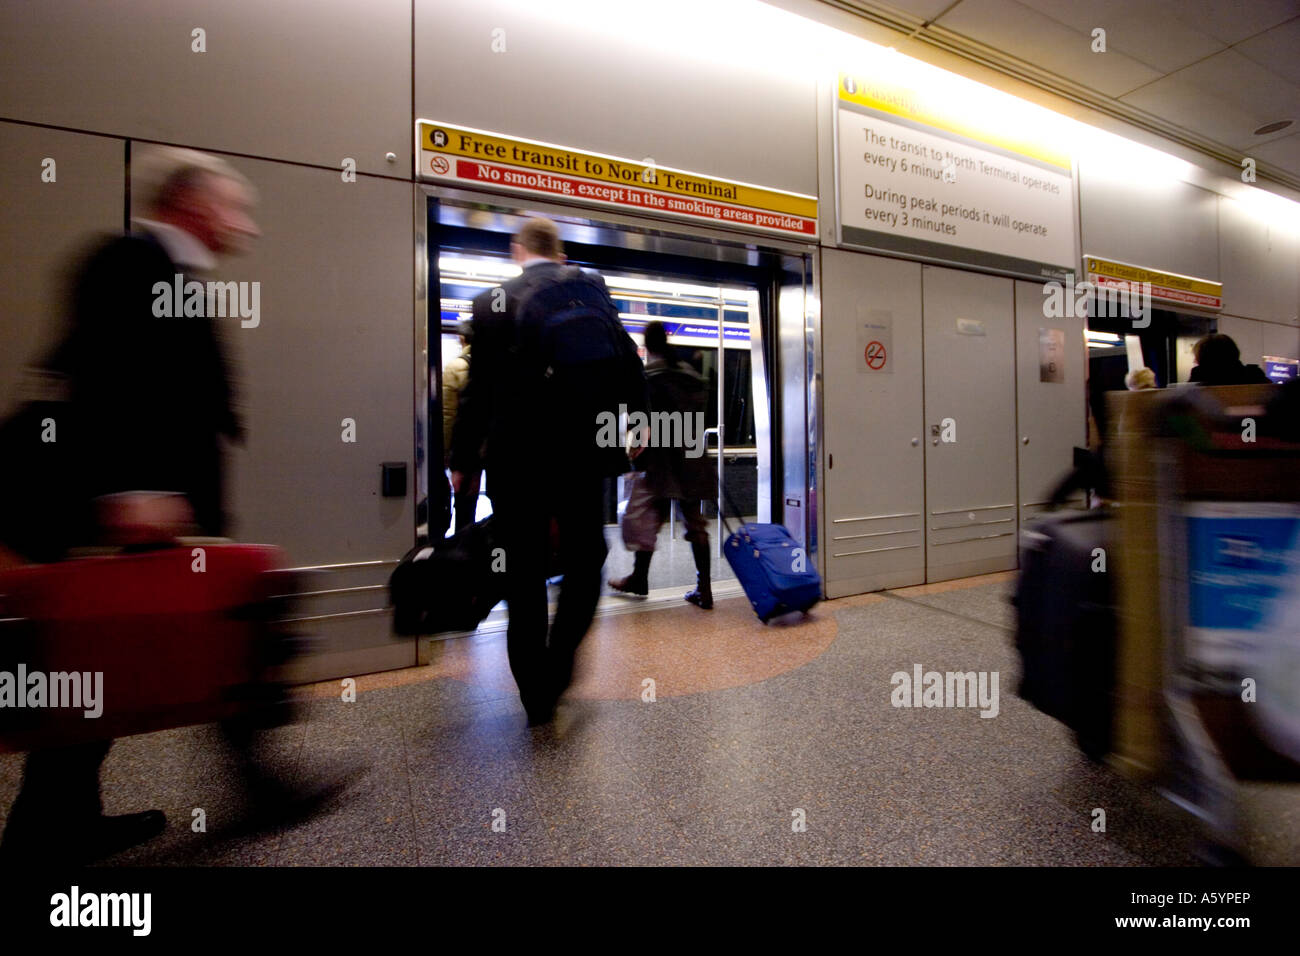 London Gatwick Airport Transit Gatwick Stock Photos London Gatwick